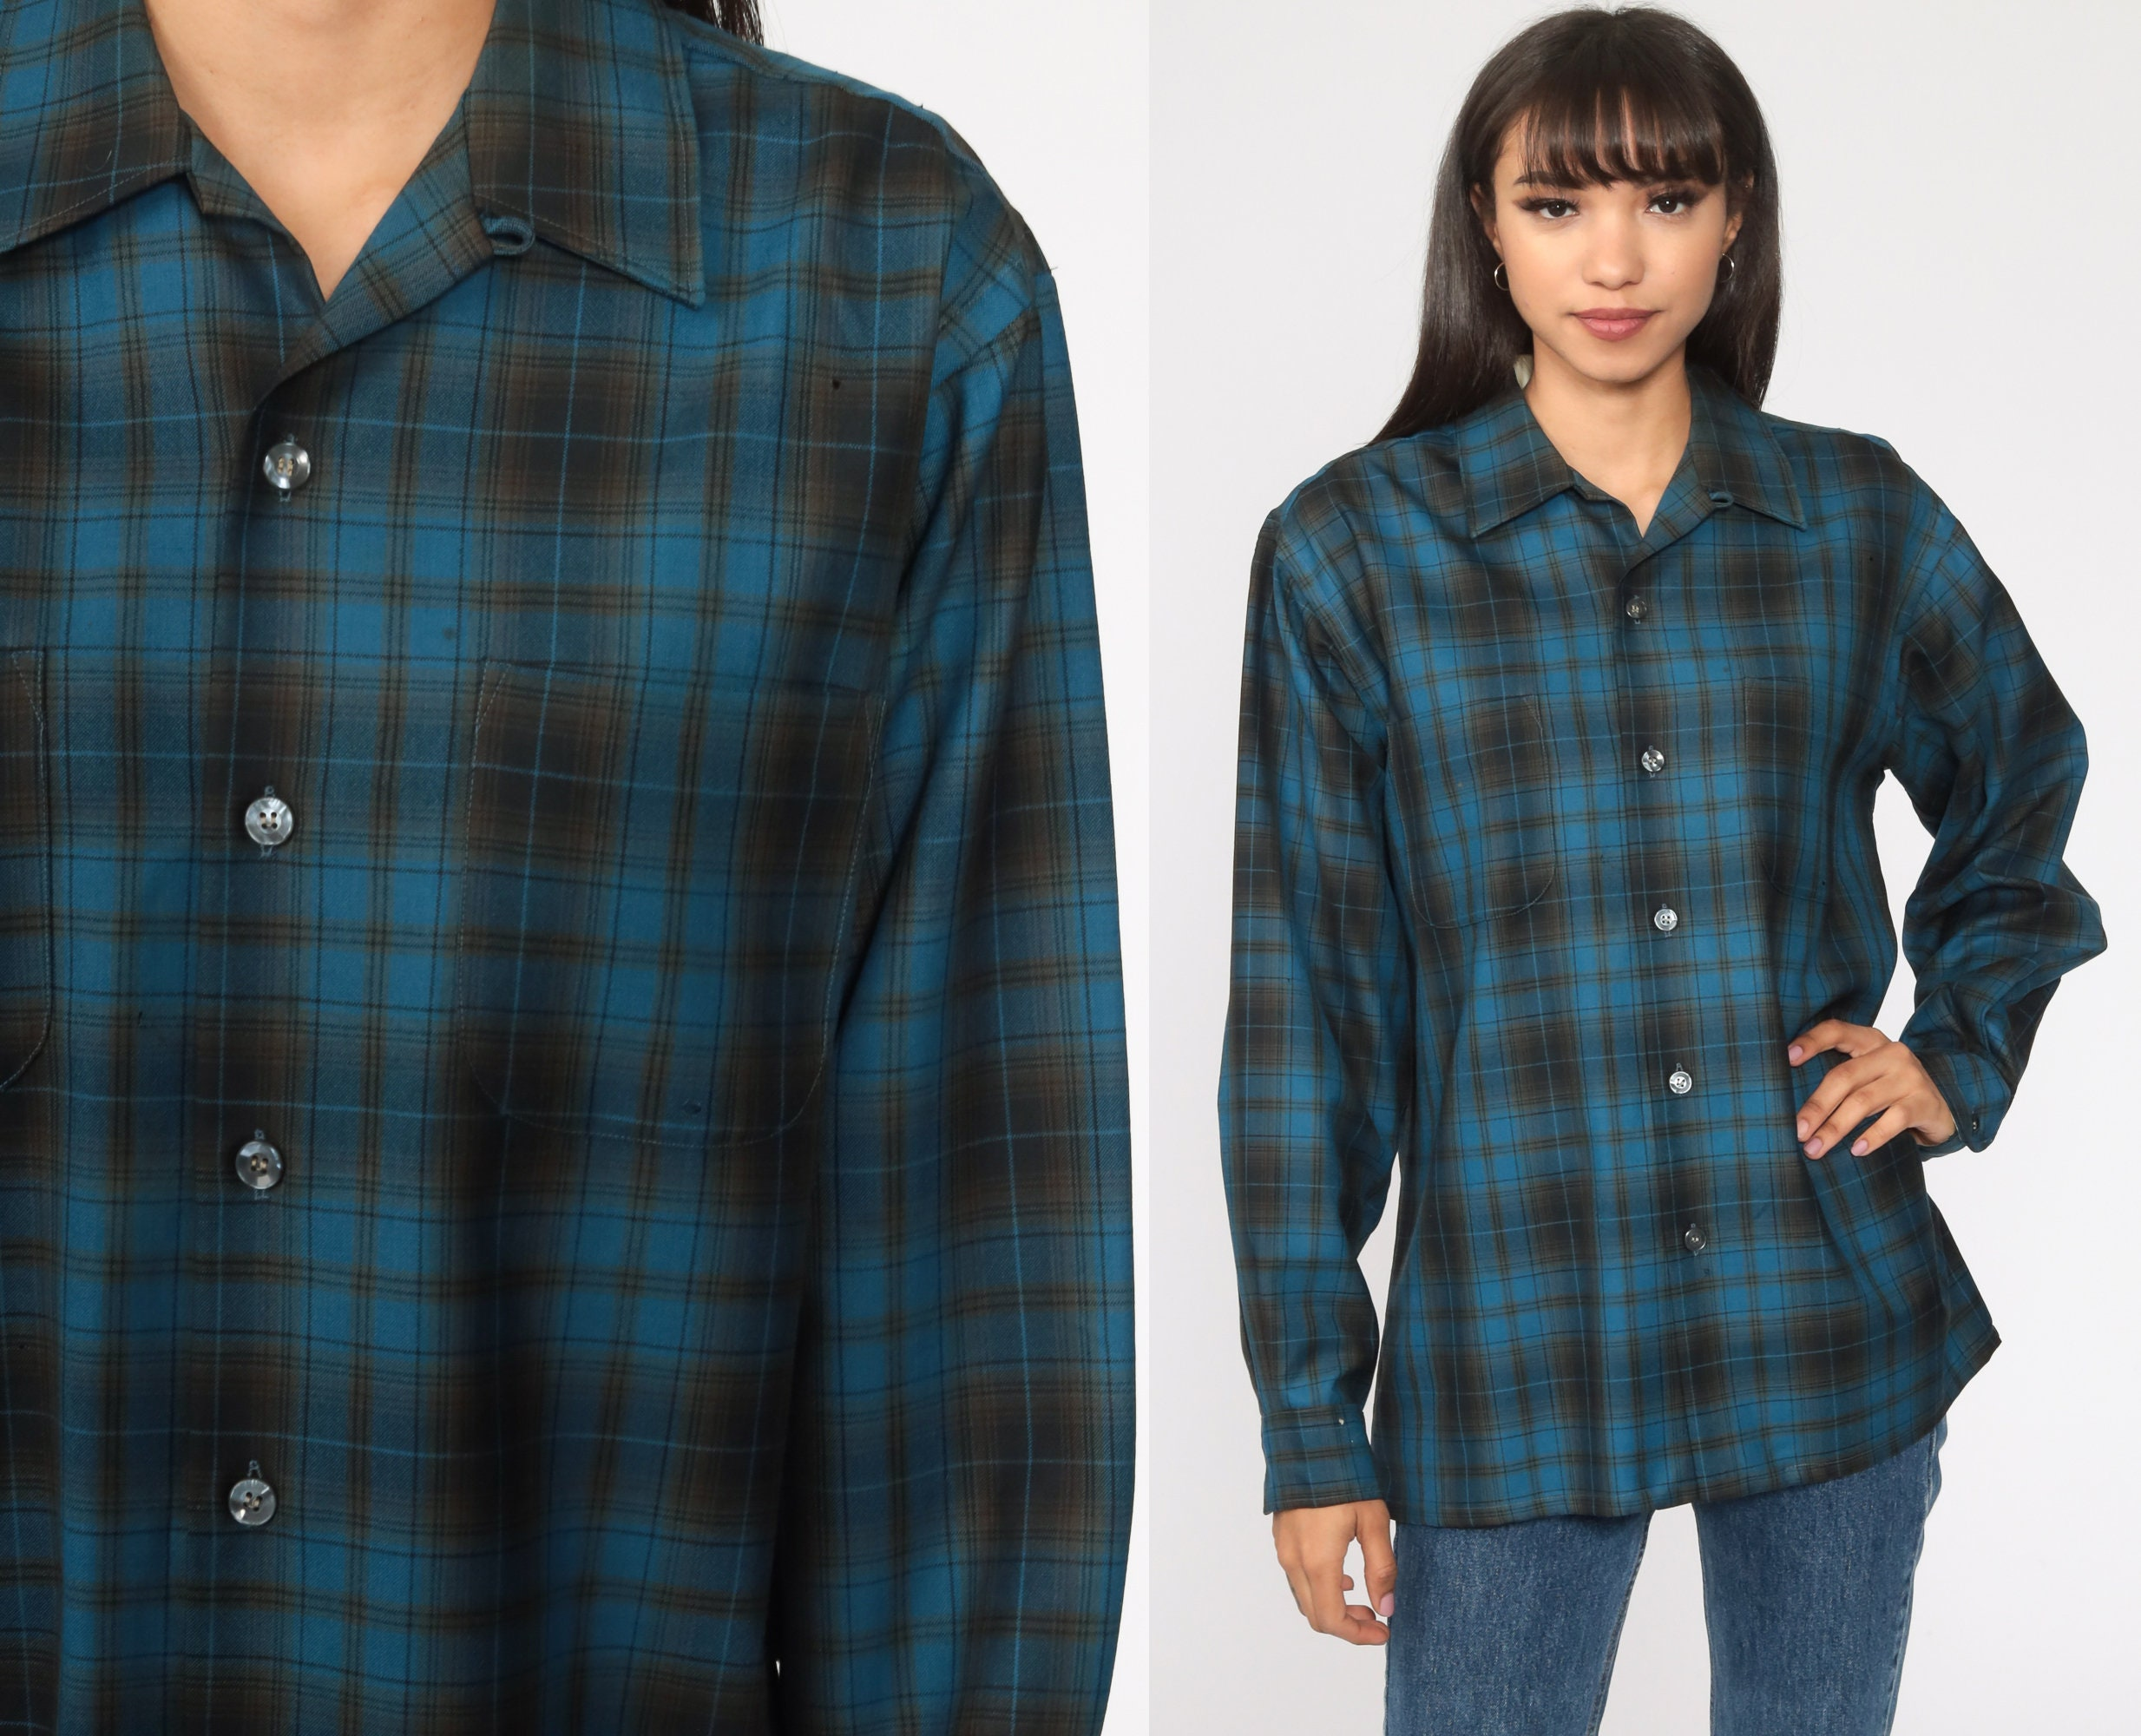 80s Tops, Shirts, T-shirts, Blouse   90s T-shirts Wool Plaid Shirt Blue Flannel Worsted 80S Long Sleeve Button Up 1980S Vintage Lumberjack Retro Medium Large $37.00 AT vintagedancer.com